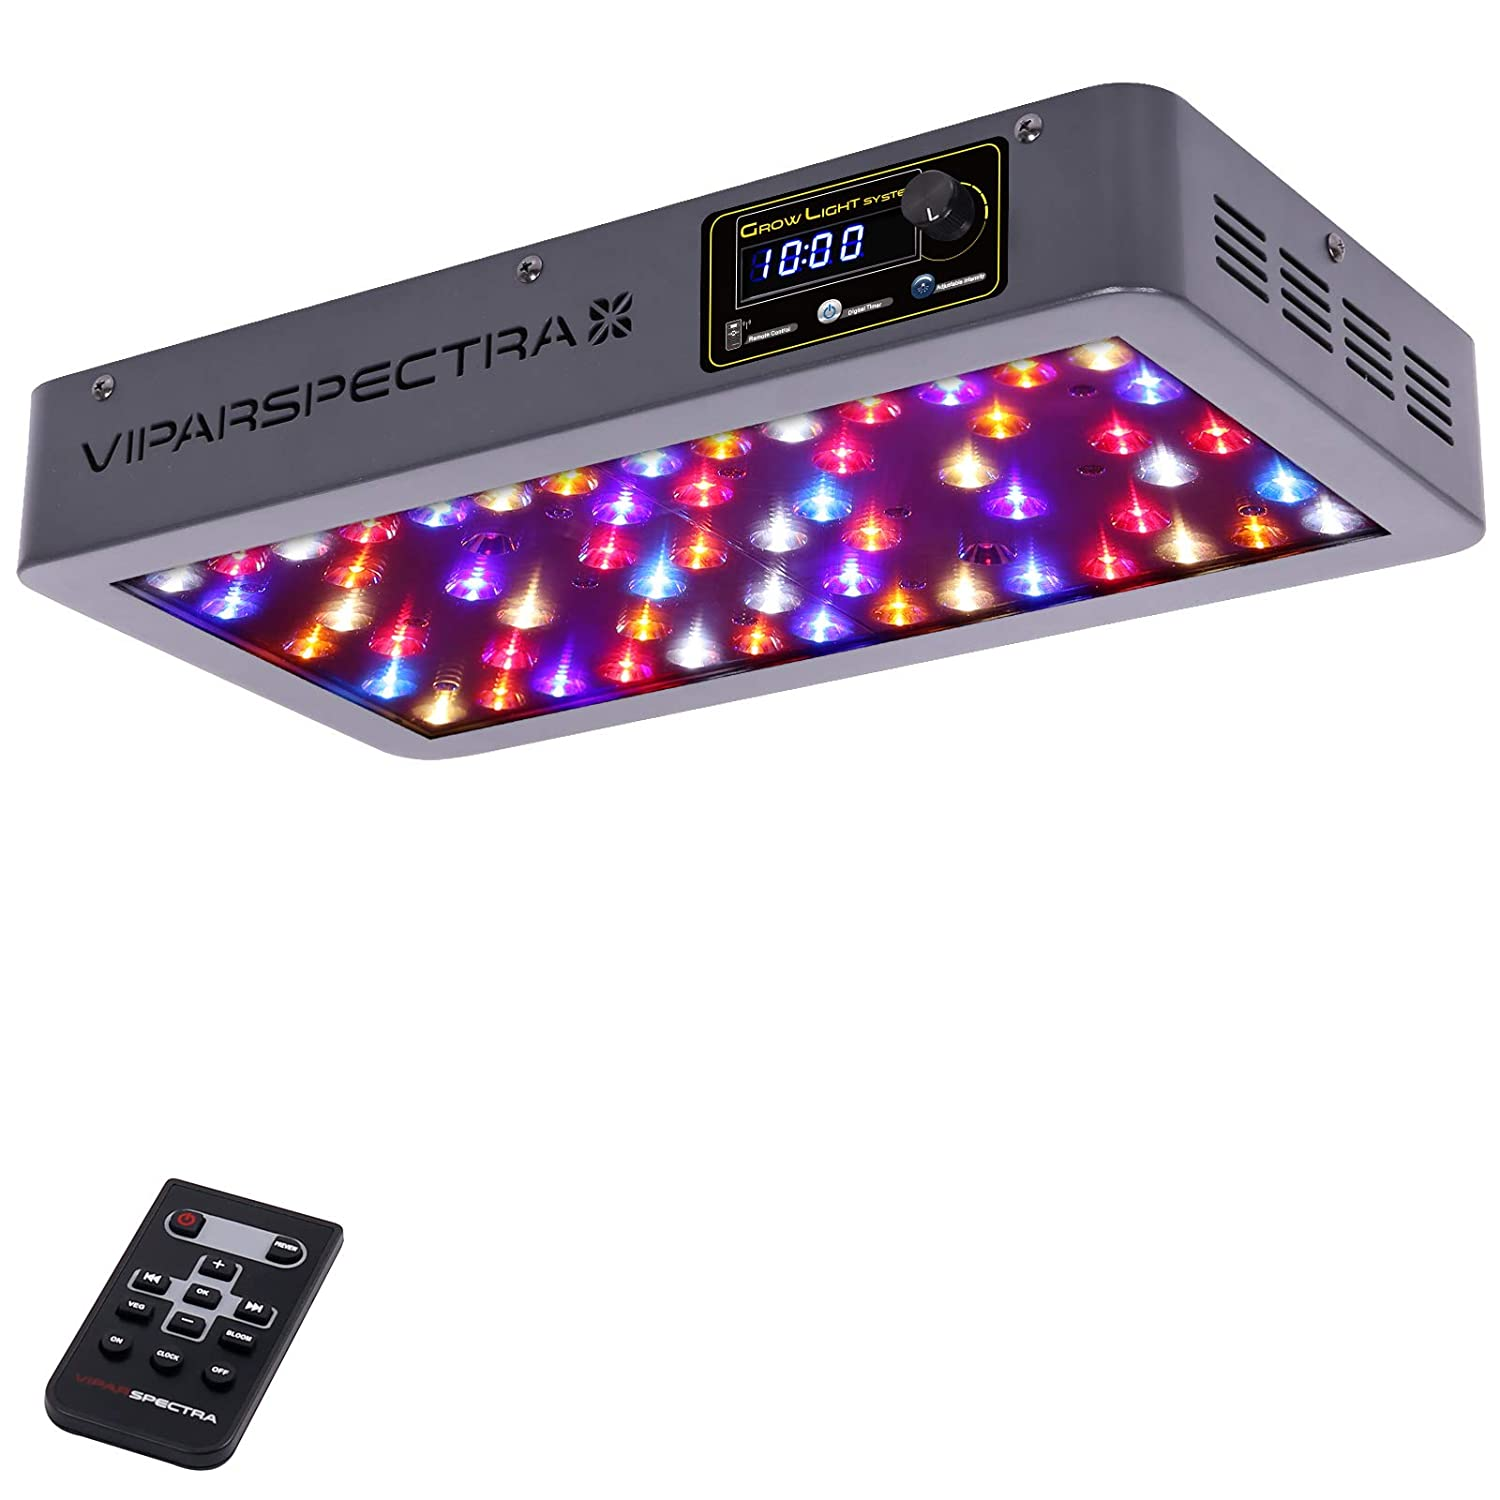 VIPARSPECTRA VT300 Reflector-Series 300W (Dimmable) – Best LED Grow Light for a Small Grow Room (Up To 2.5′ x 2.5′)